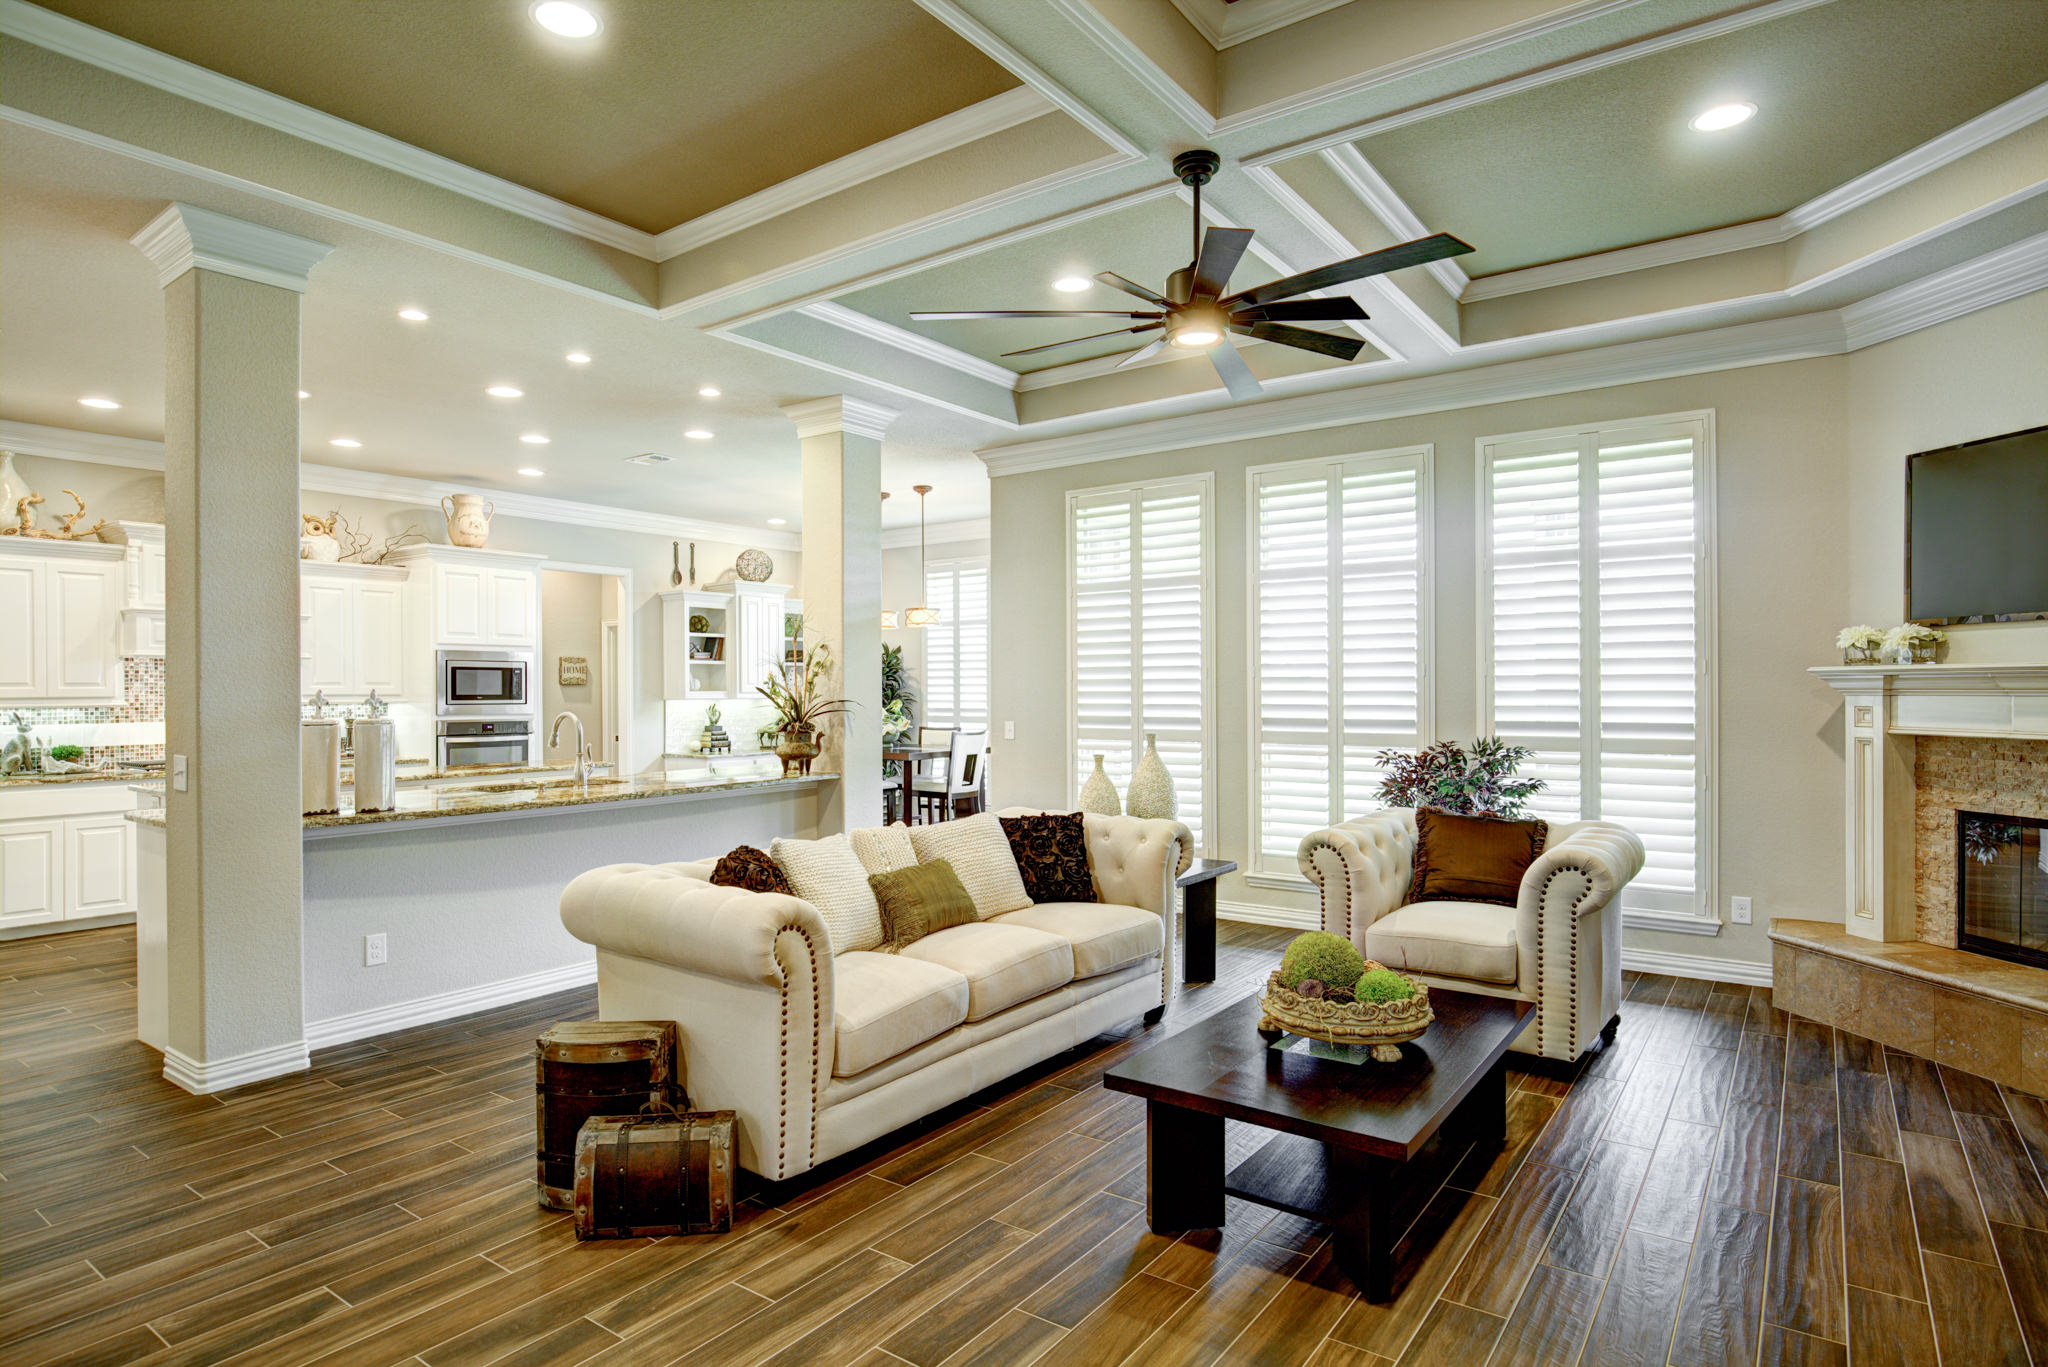 RJ Wachsman Homes | New Houses for Sale in Wichita Falls